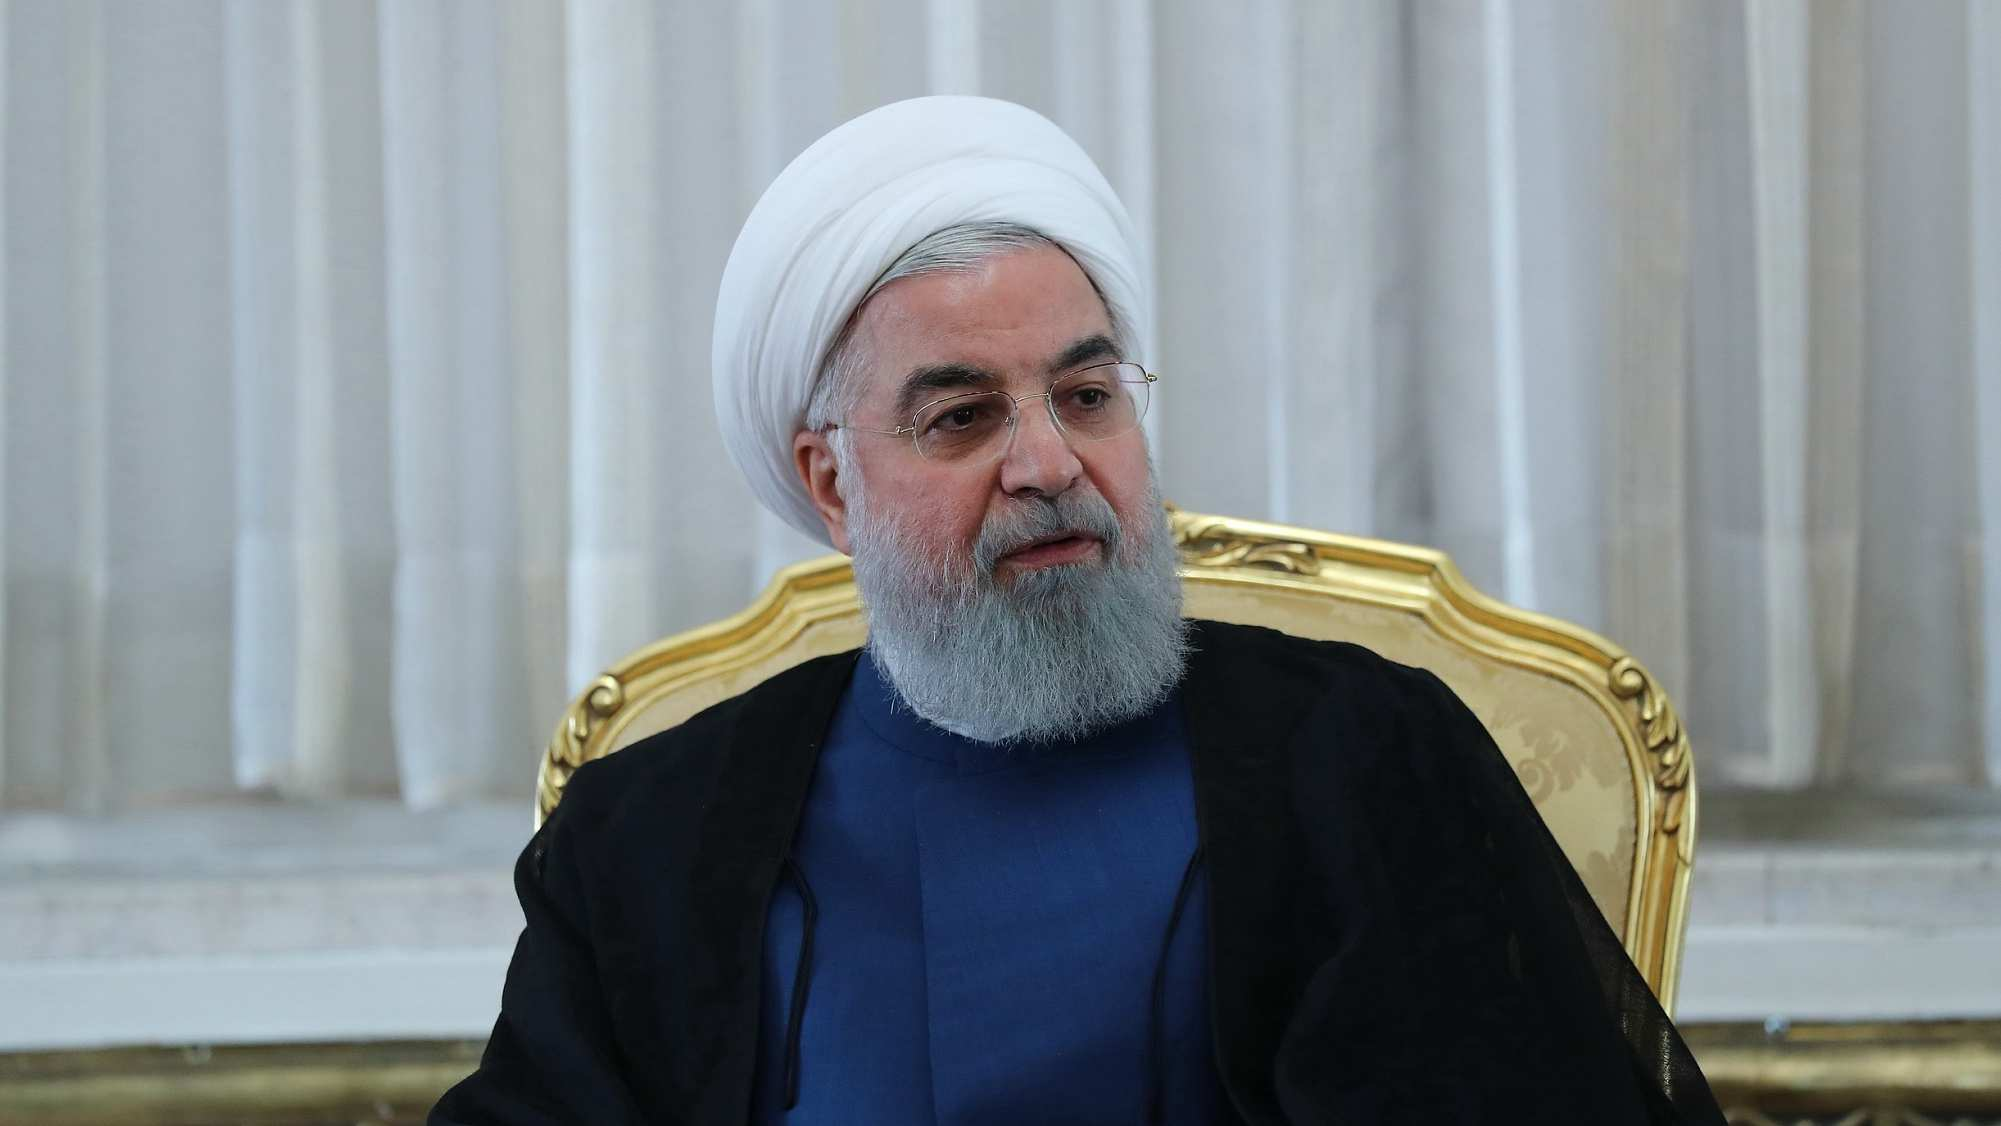 Iranian president lauds nation's 'resistance' against US sanction pressures